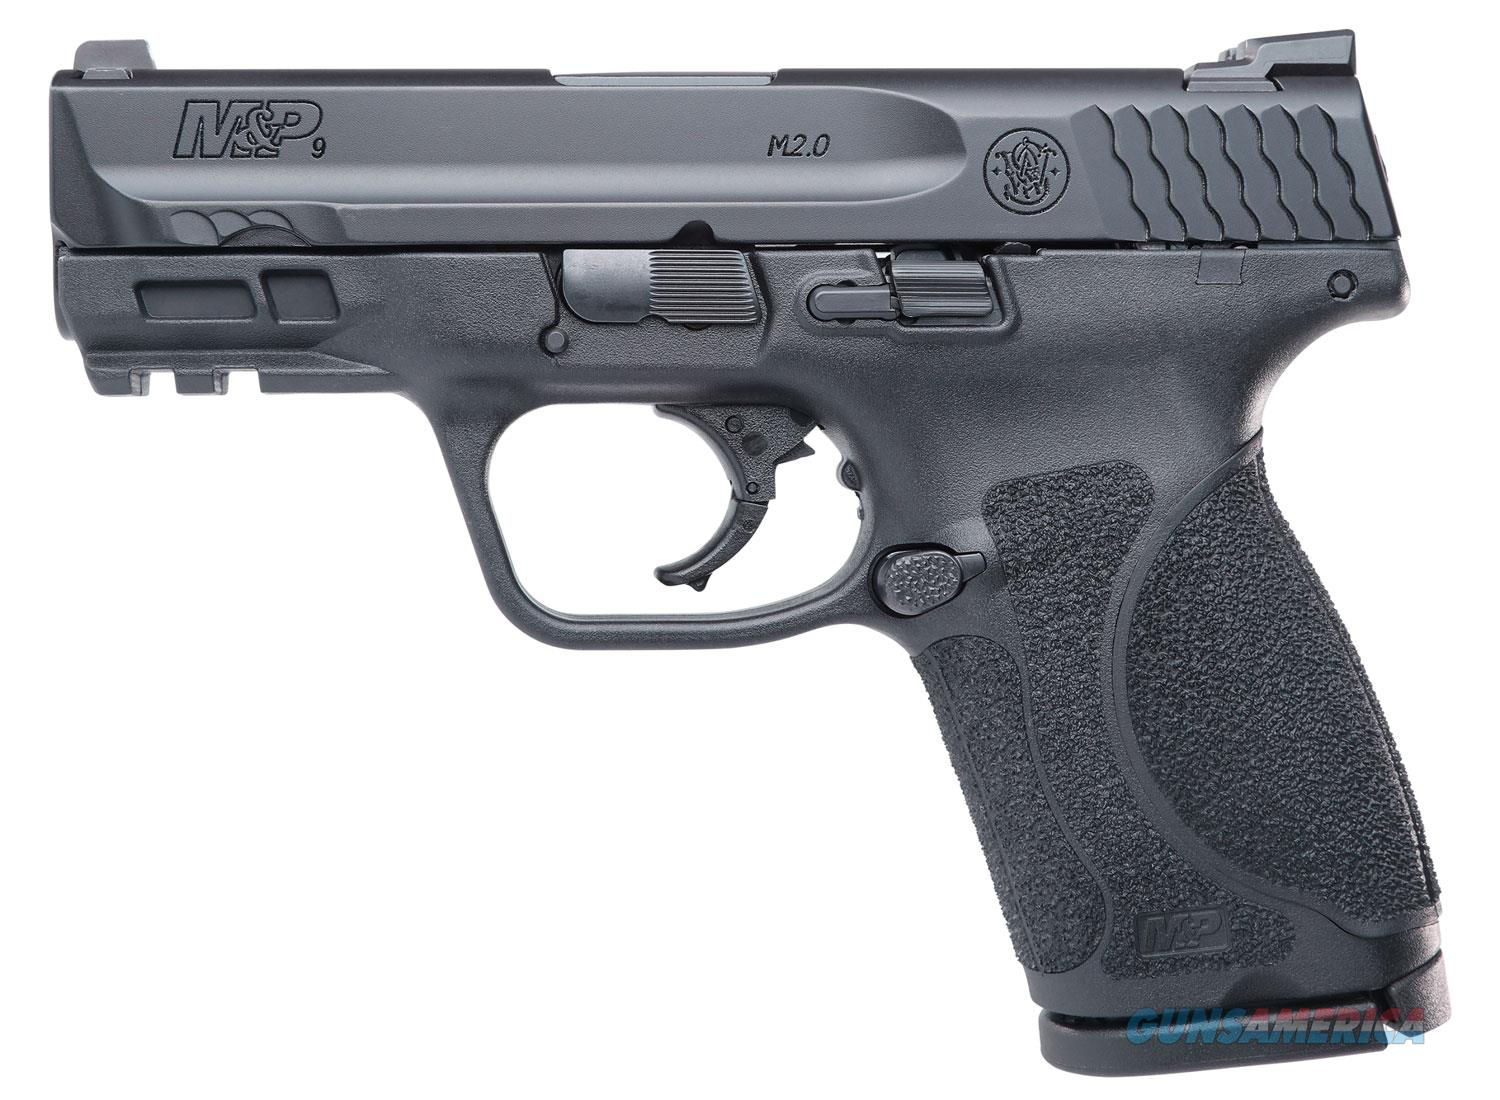 "S&W M&P9 M2.0 Compact 9mm 3.6"" 15+1 $50 Rebate NoCCFee 11688  Guns > Pistols > Smith & Wesson Pistols - Autos > Polymer Frame"